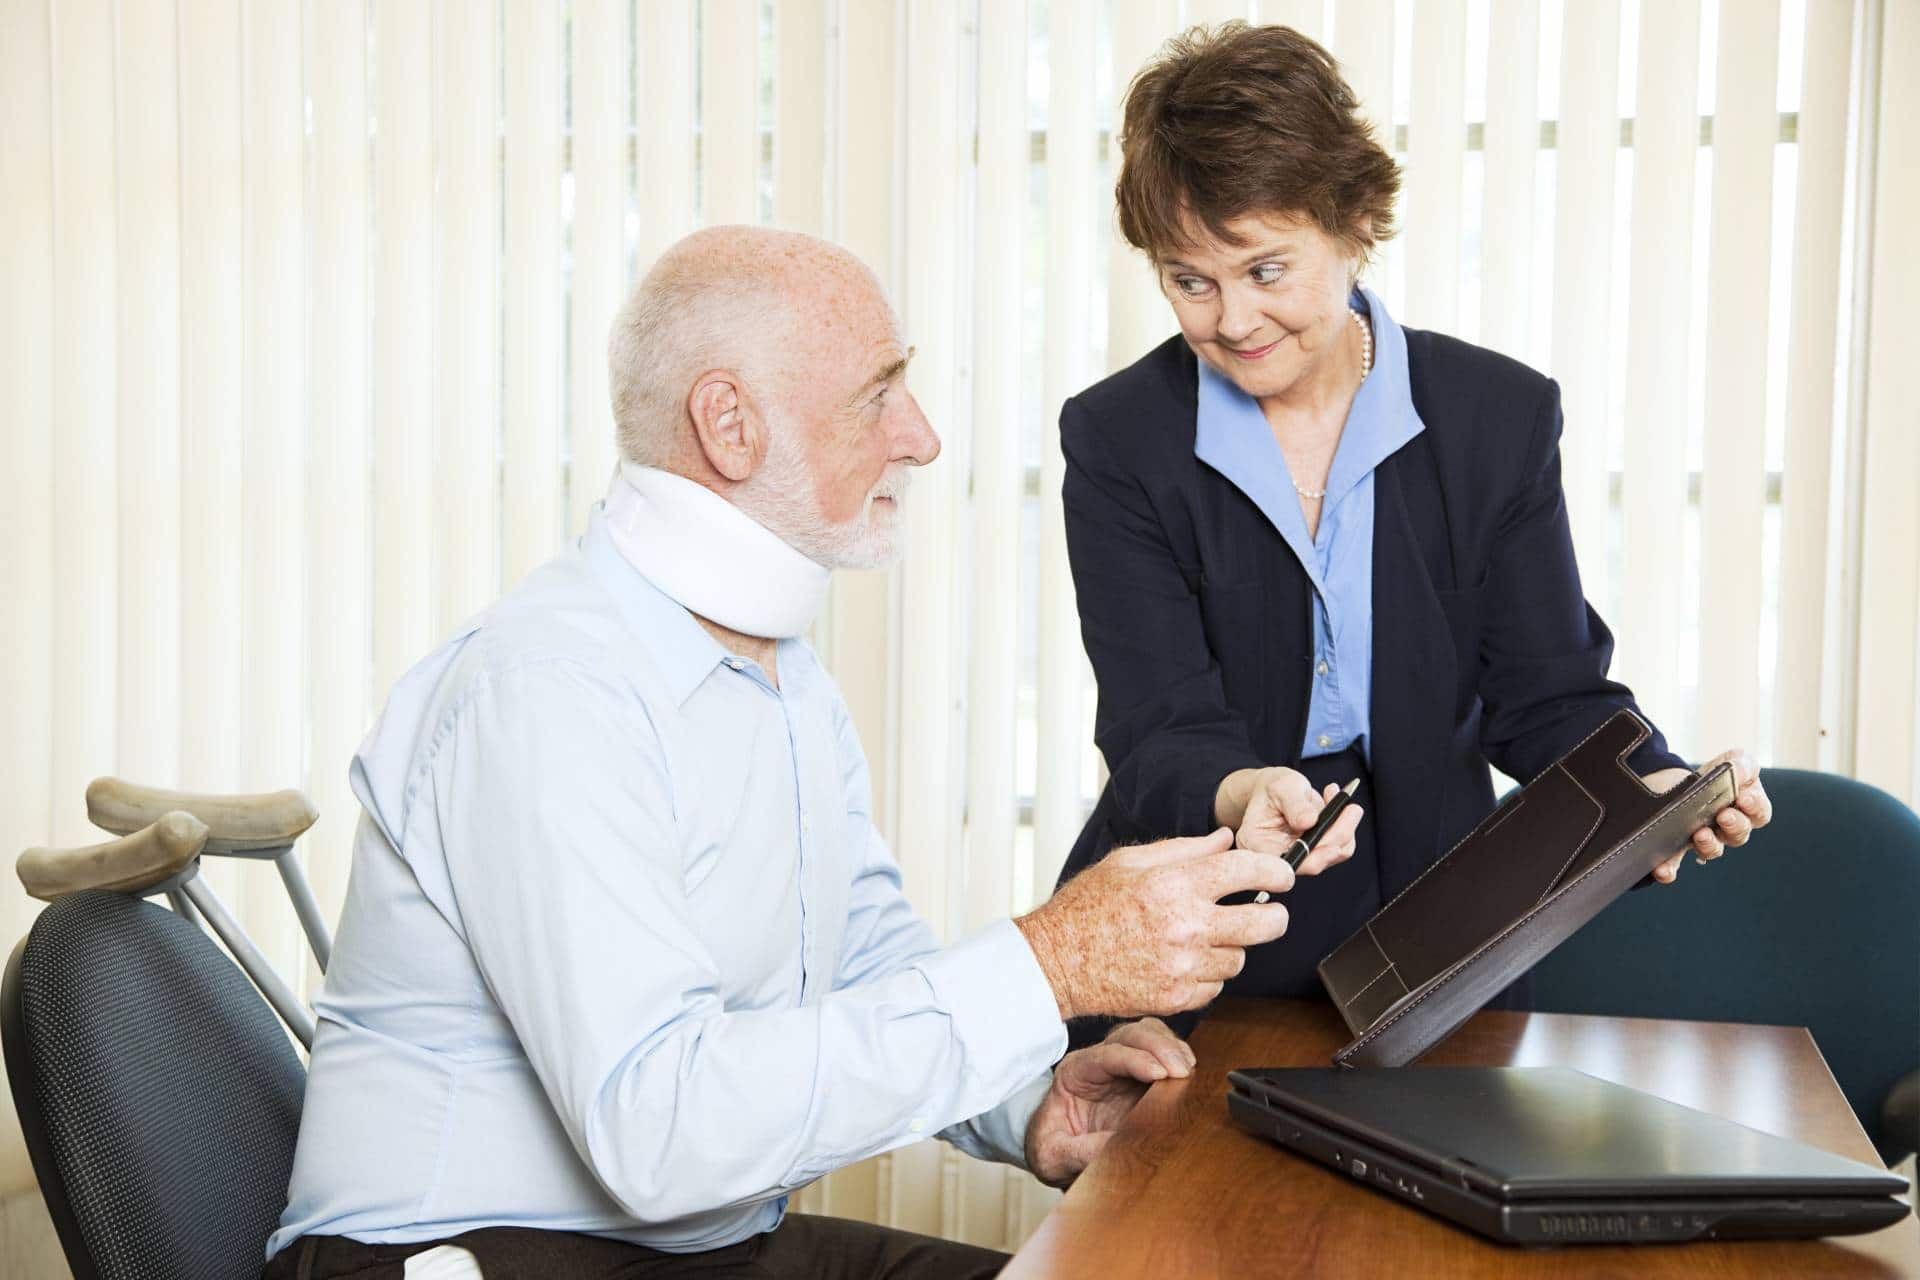 Schedule a free consultation with our personal injury lawyers at the Angell Law Firm in Berkeley Park.